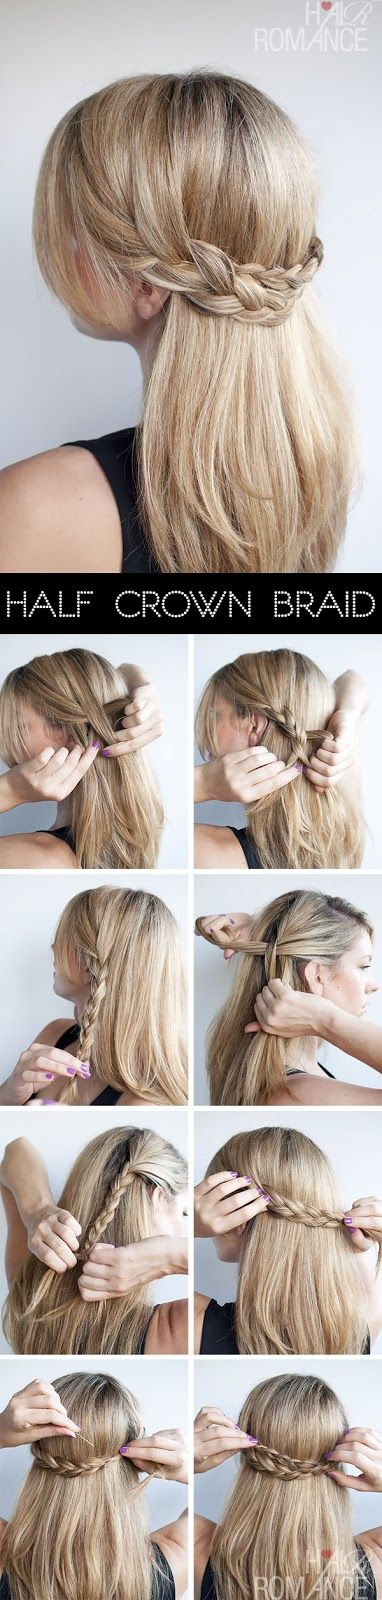 hairstyles: Half Crown Braid Hairstyle Tutorial